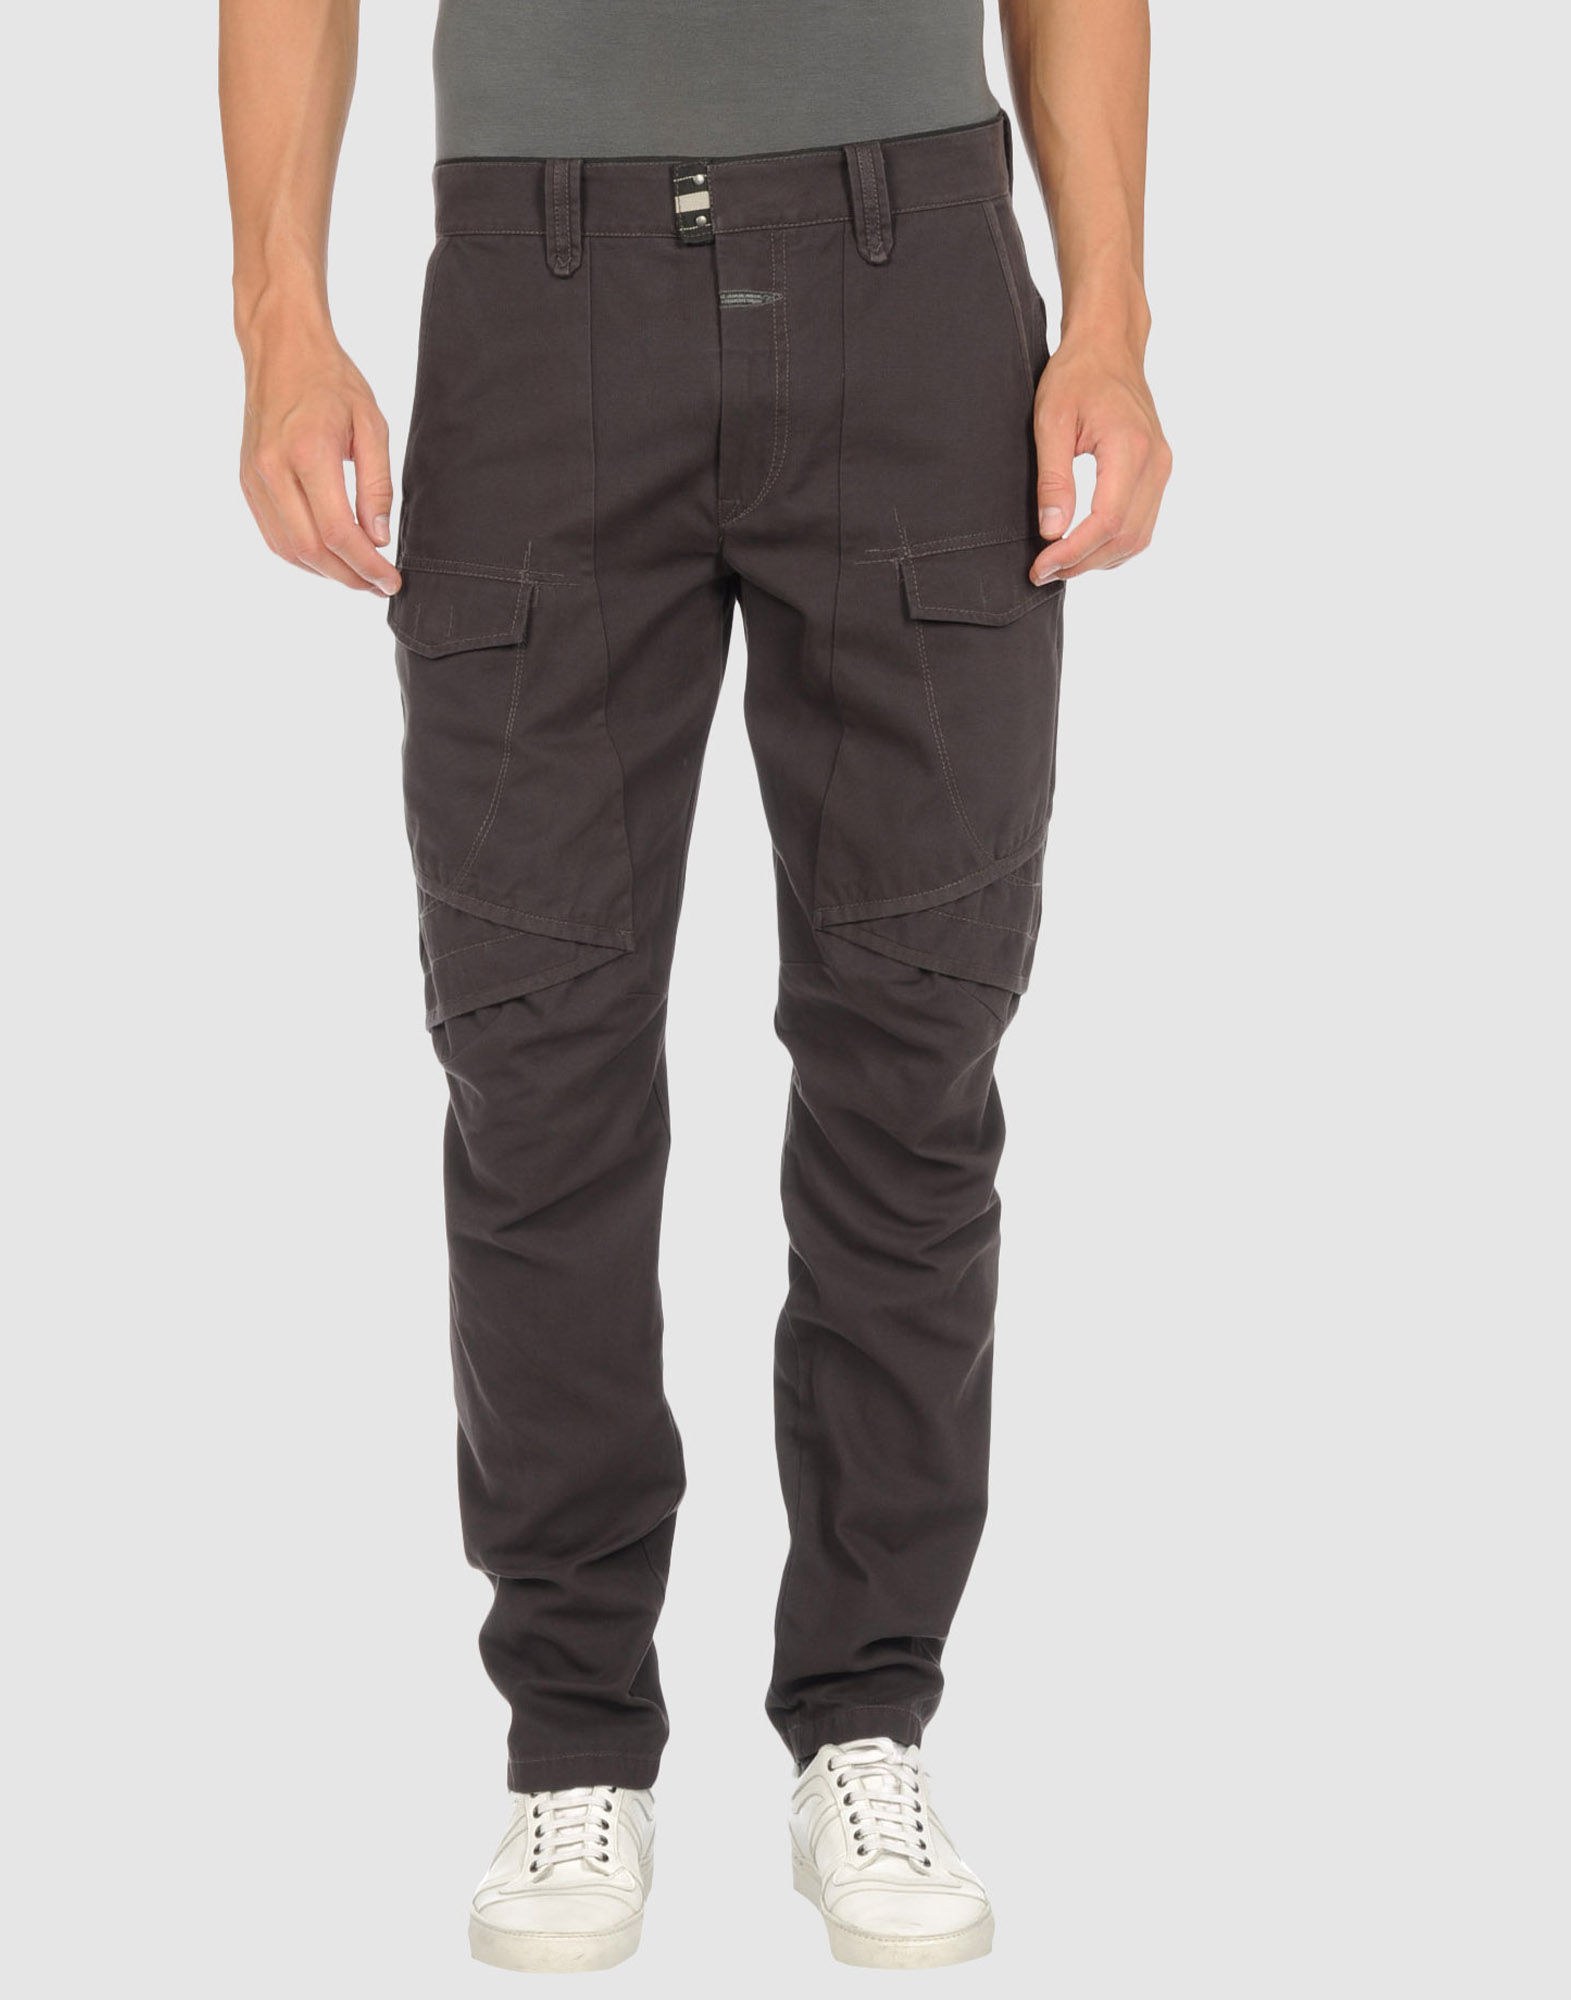 marith et fran ois girbaud casual pants in gray for men lead lyst. Black Bedroom Furniture Sets. Home Design Ideas